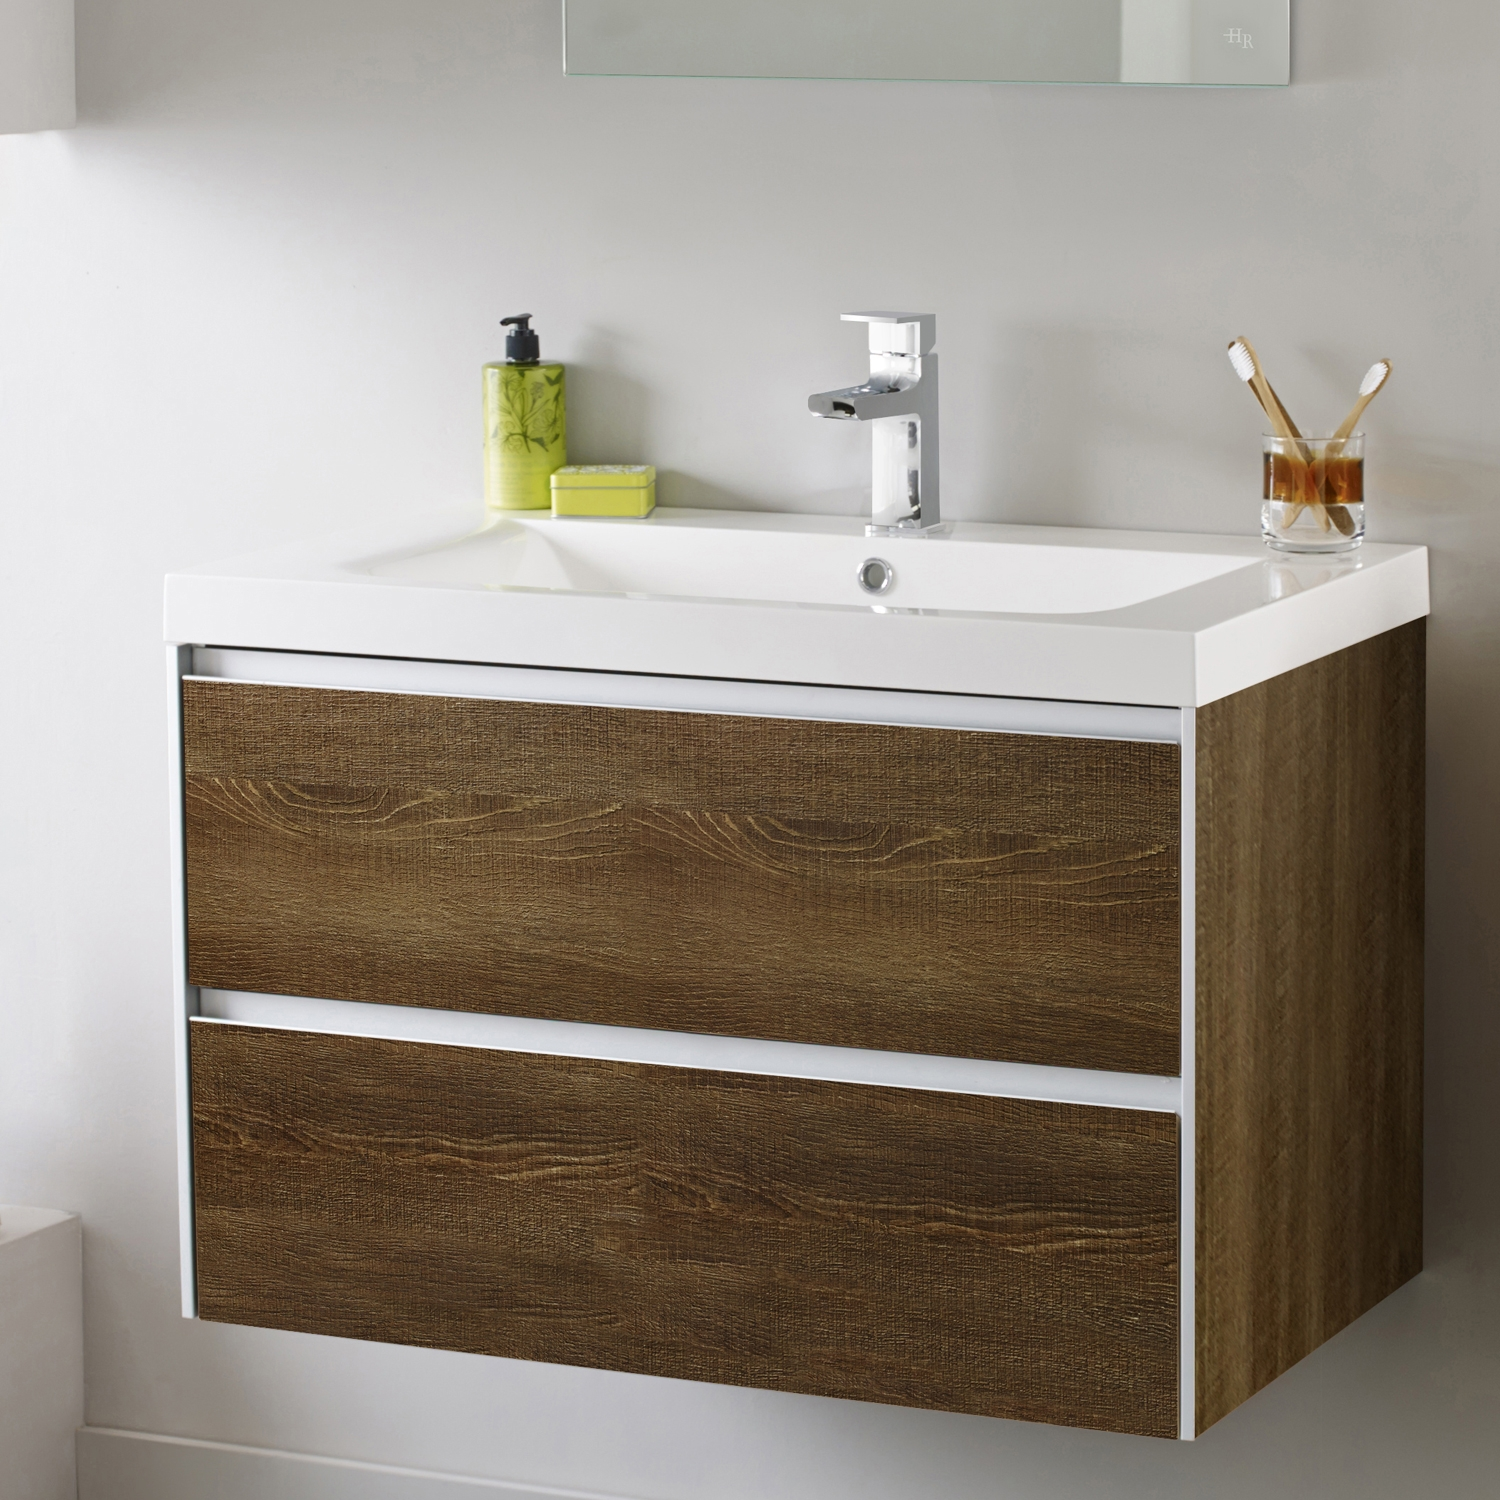 Hudson Reed Erin Wall Mounted Basin and Cabinet, 800mm Wide, Textured Oak